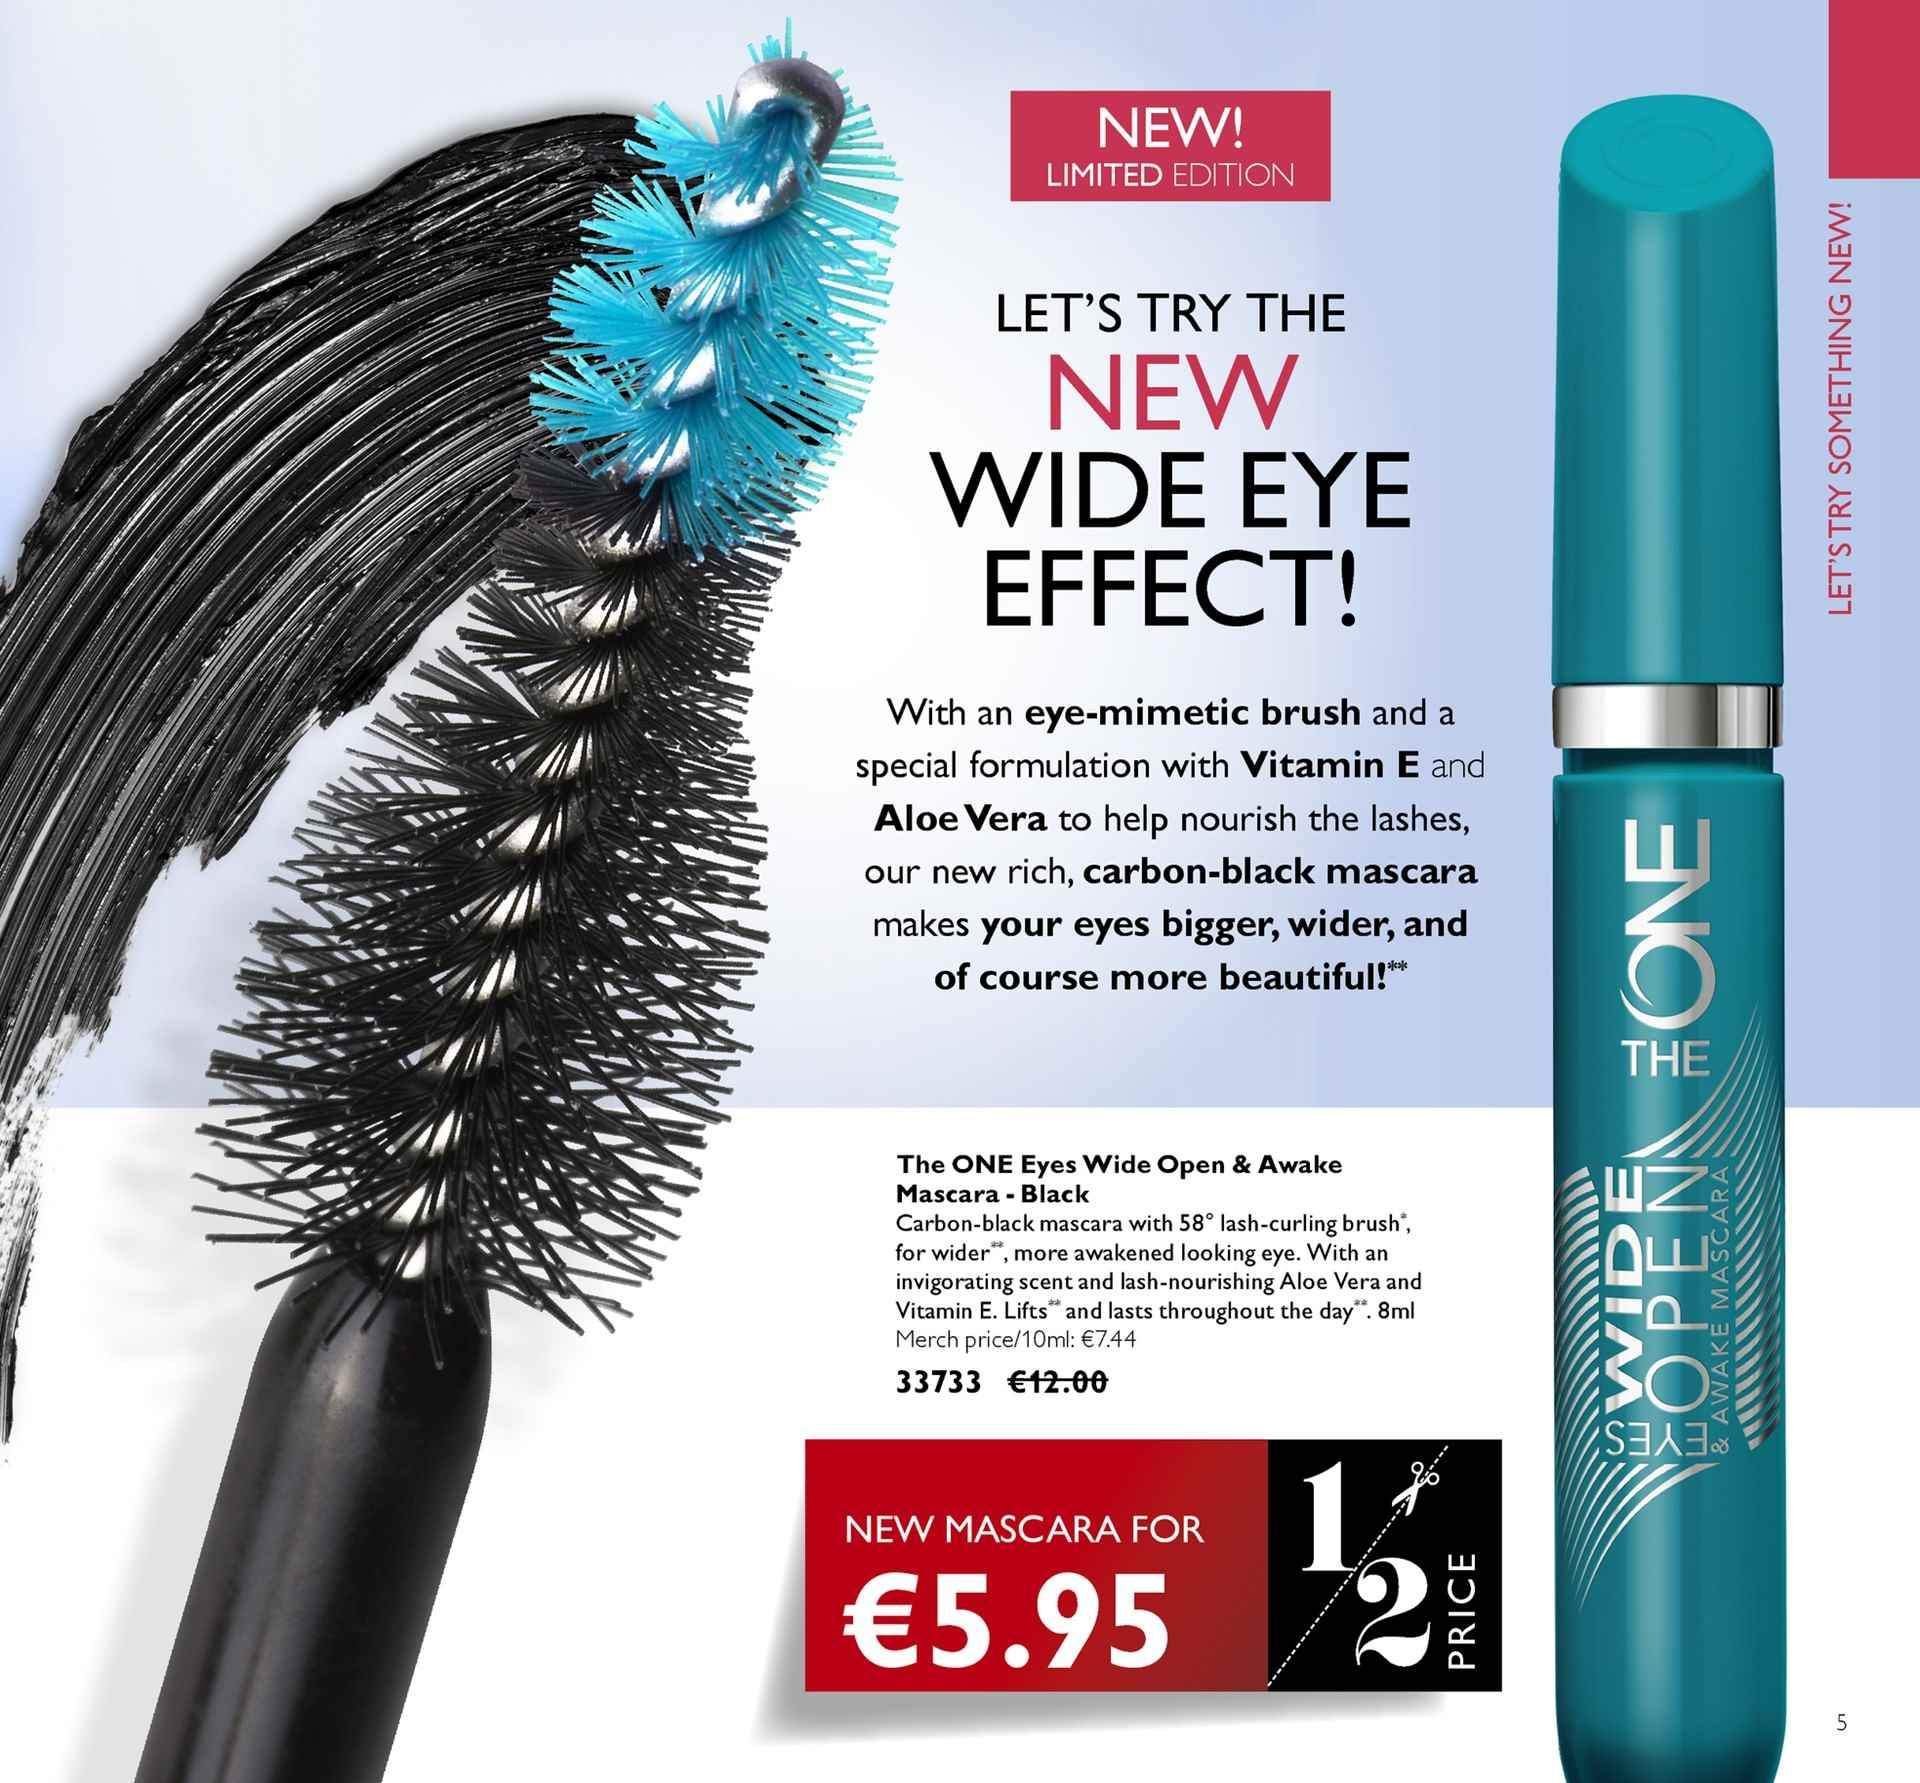 Oriflame offer  - 4.5.2018 - 24.5.2018 - Sales products - mascara. Page 5.